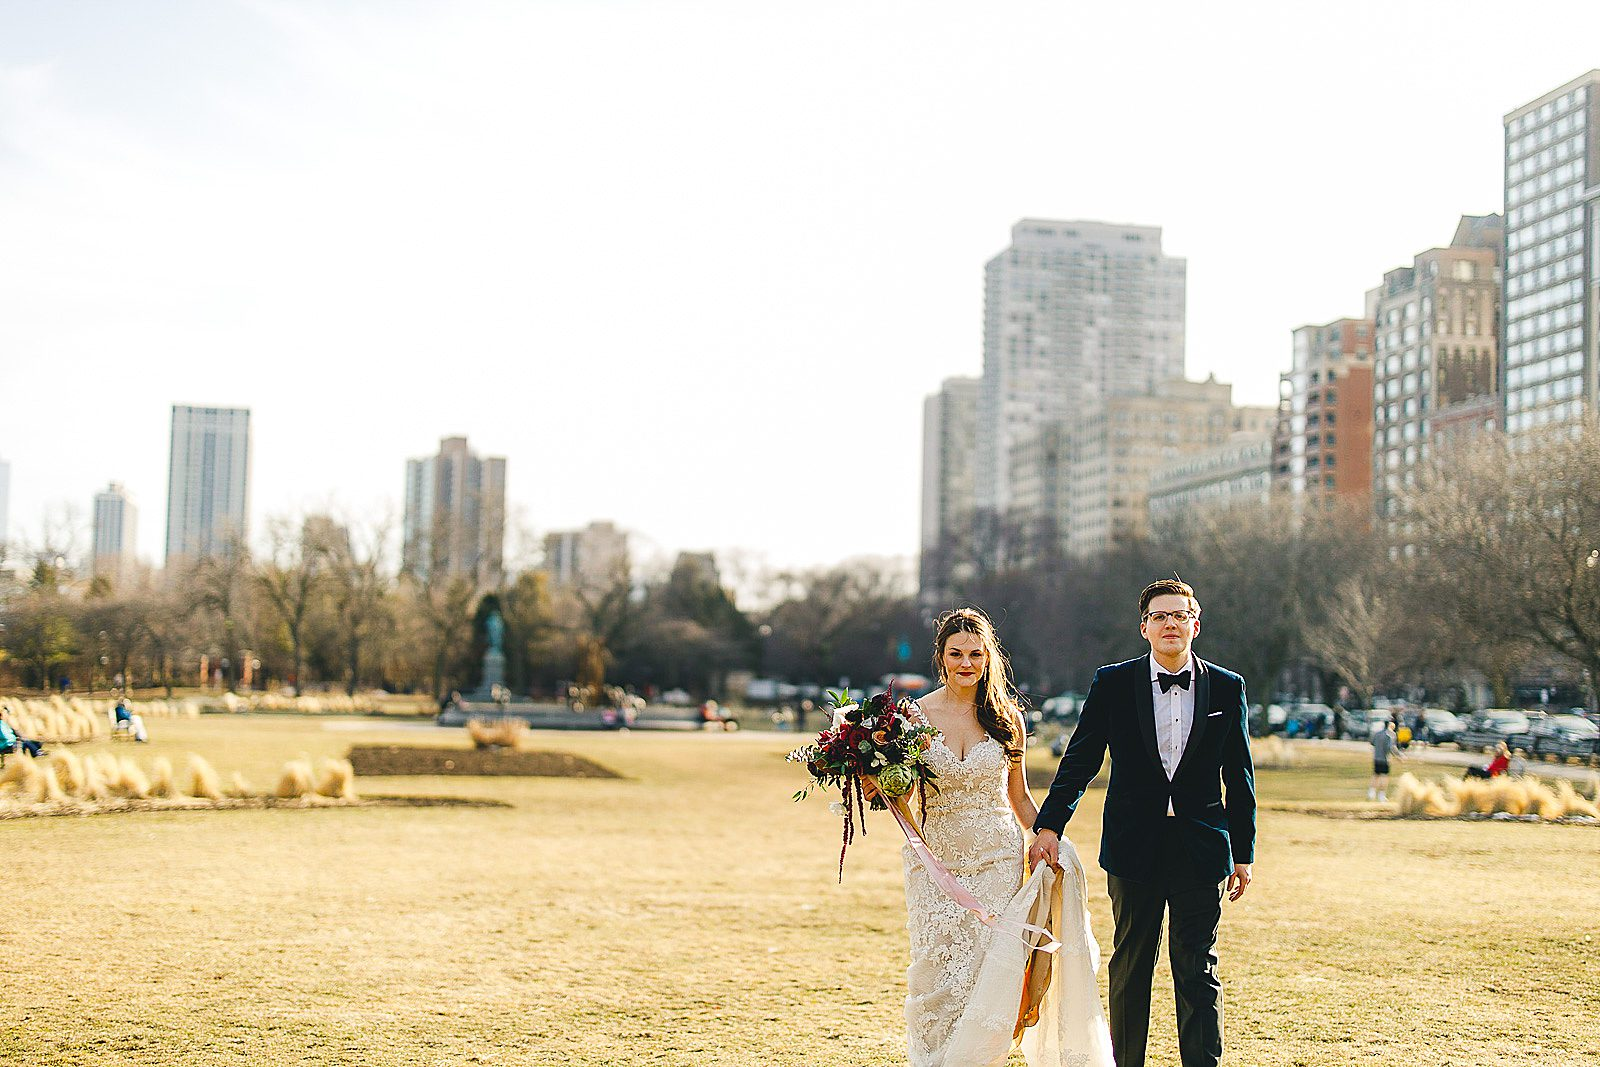 21 chicago wedding photograhy - The Wedding of Samantha + Kyle in Chicago